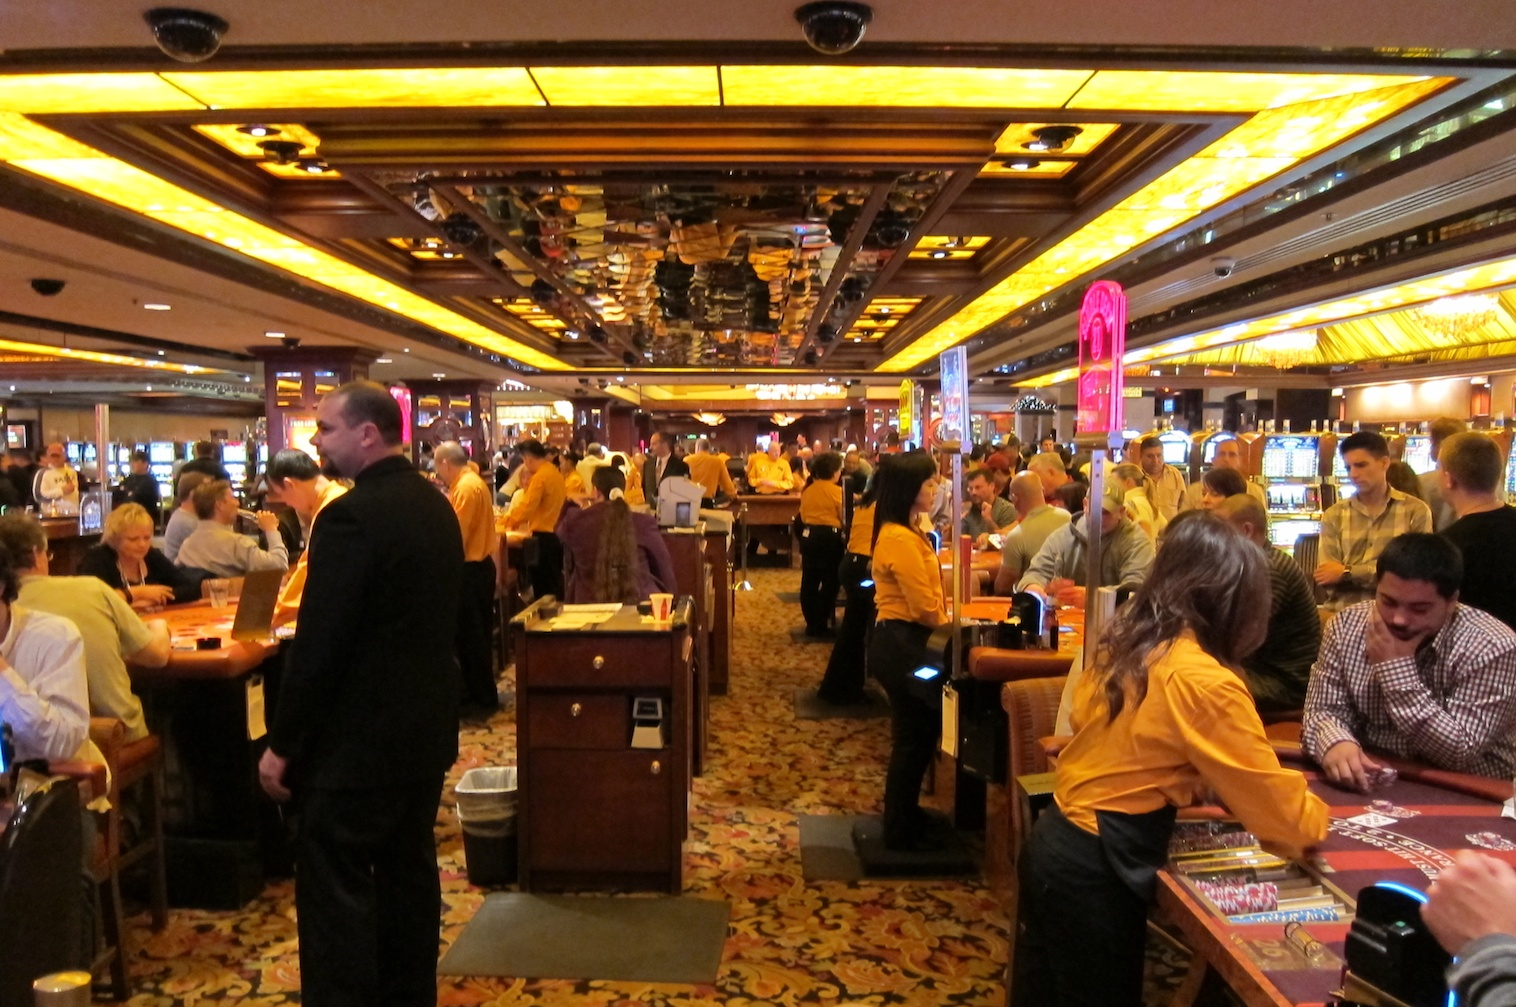 Golden Nugget Casino Las Vegas